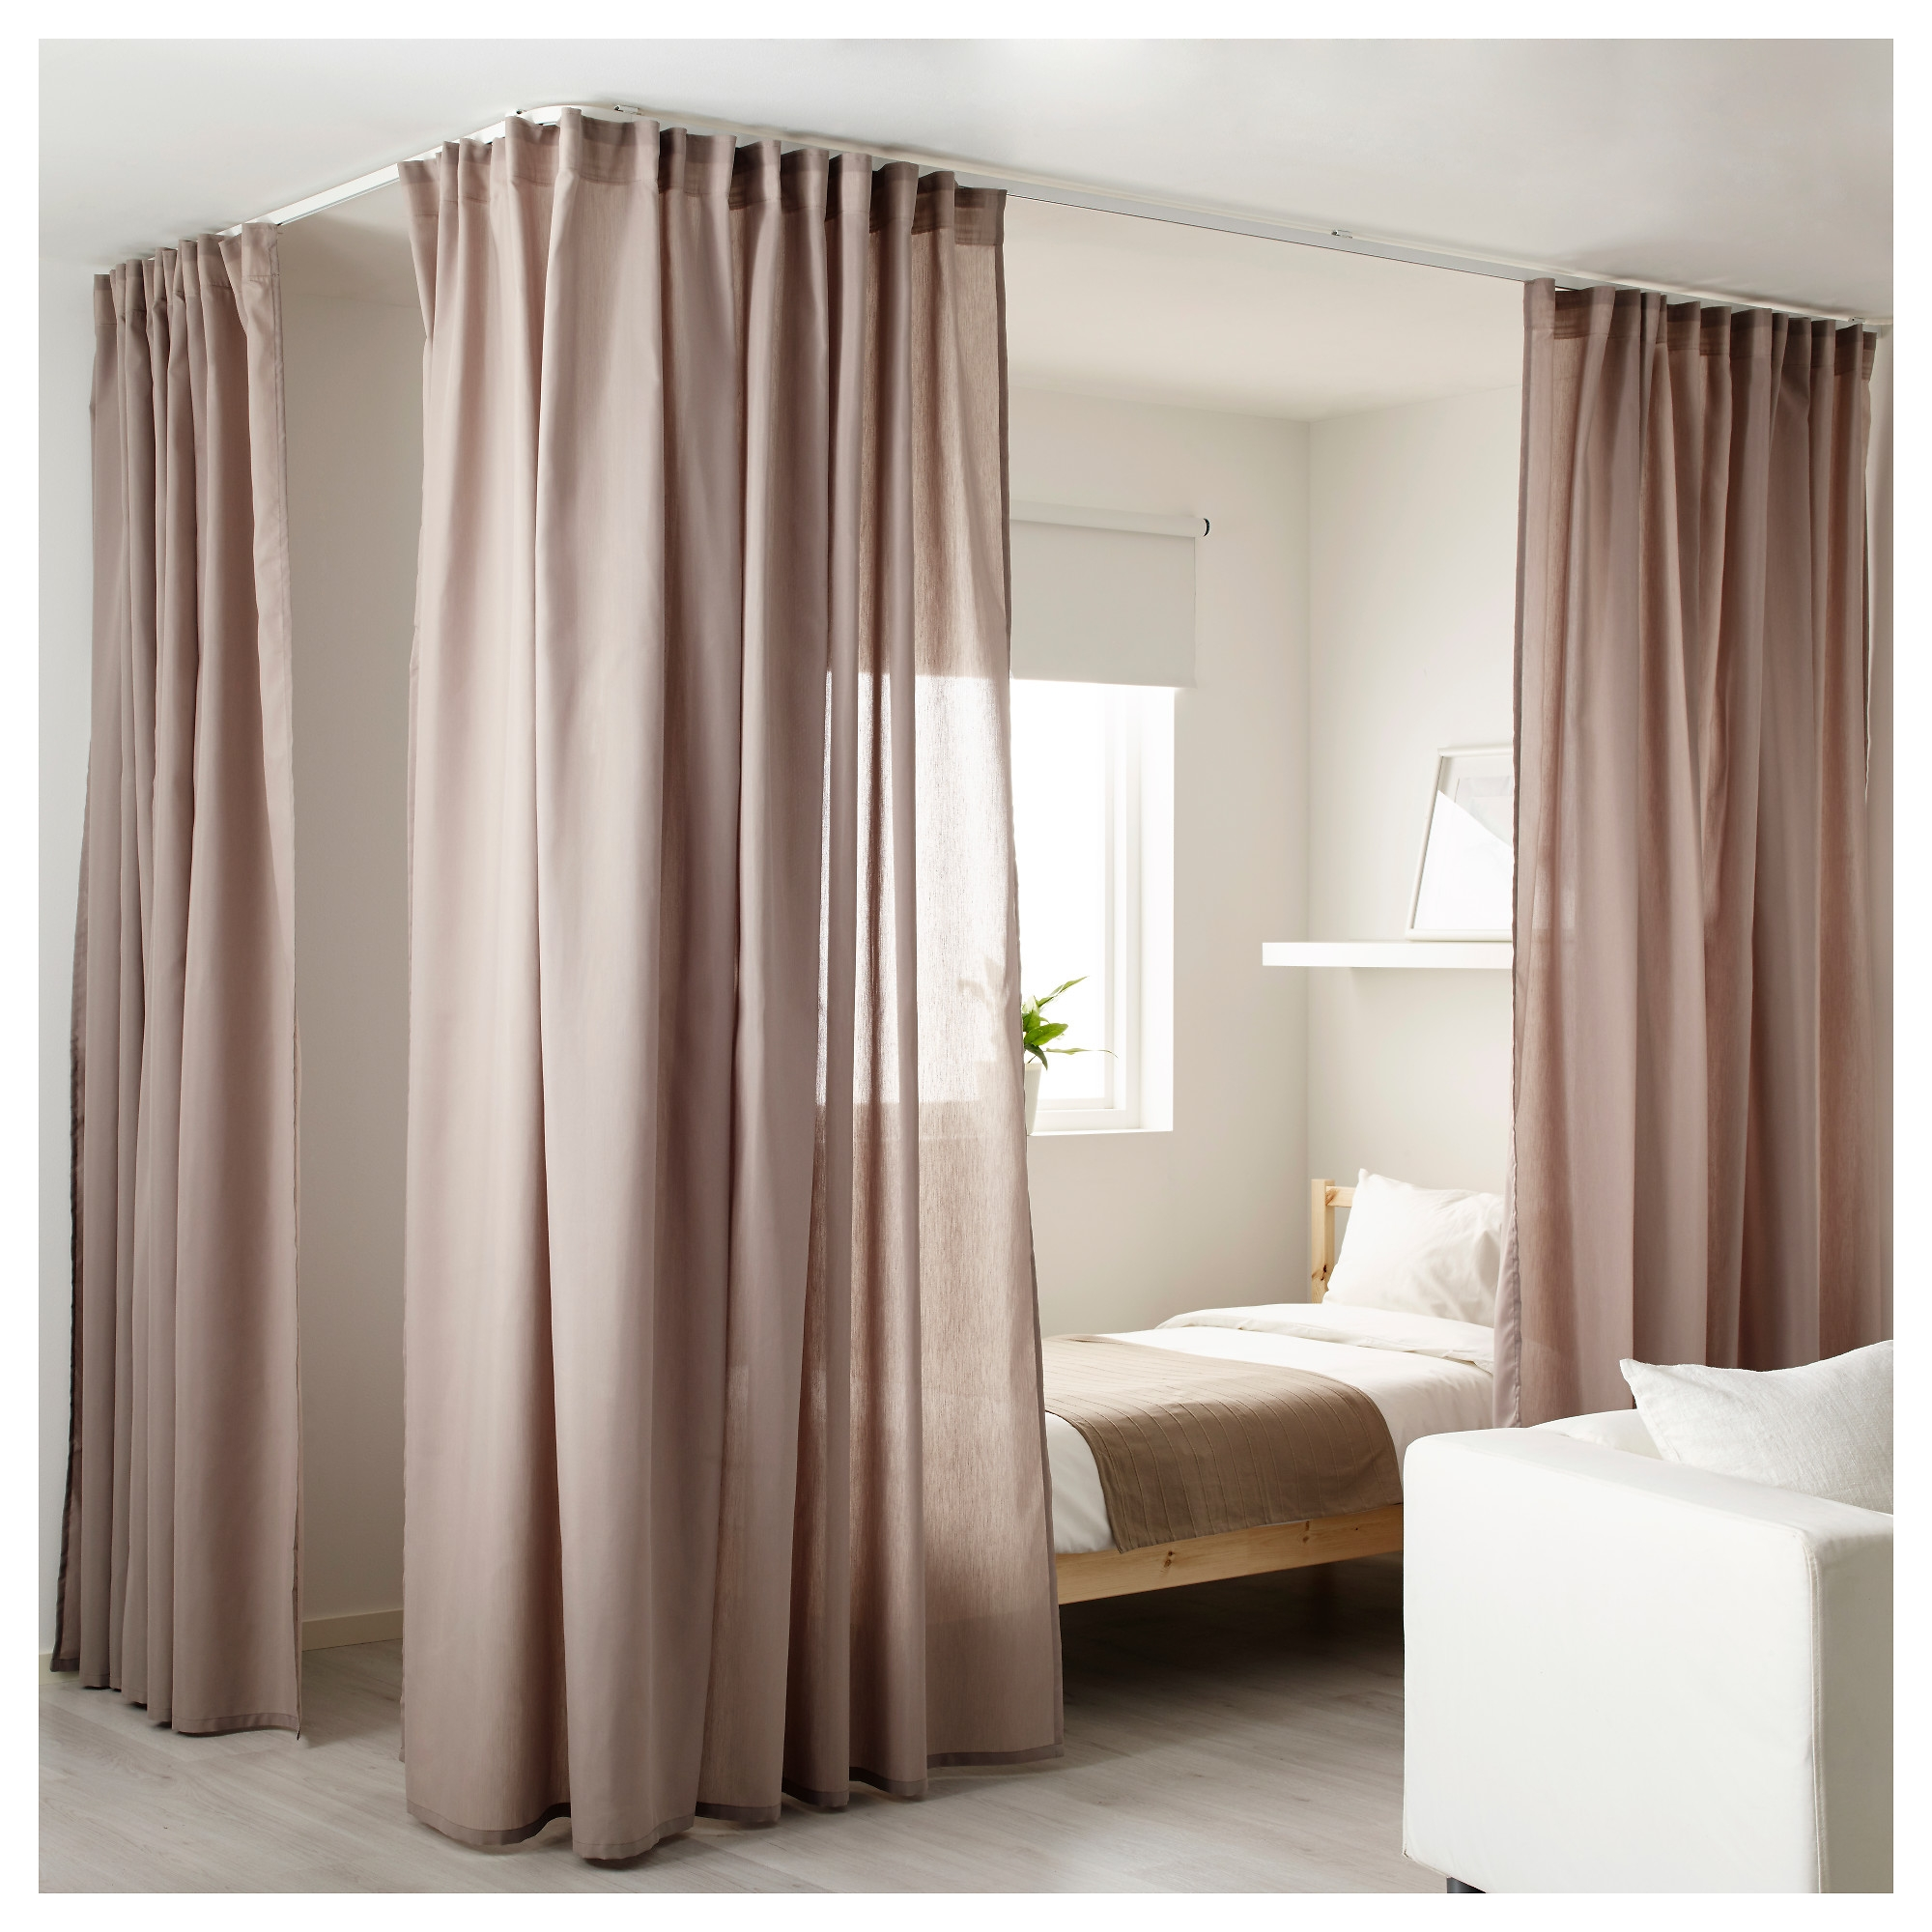 Featured Image of Room Curtain Divider IKEA